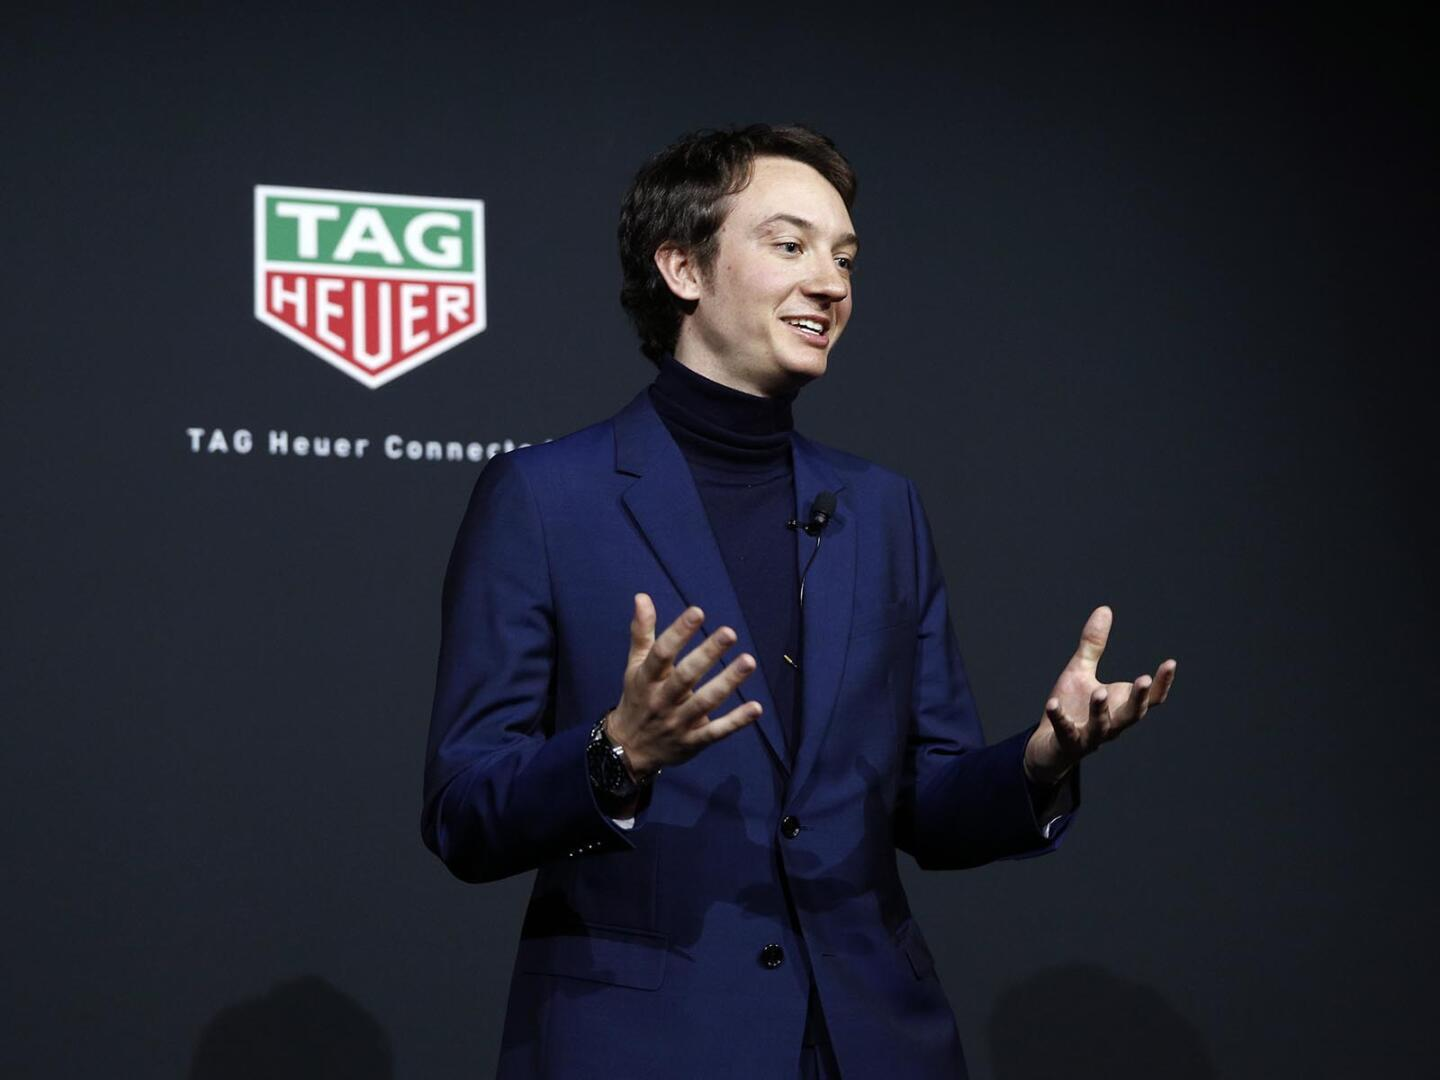 Kuva: Brian Ach/Getty Images for TAG Heuer